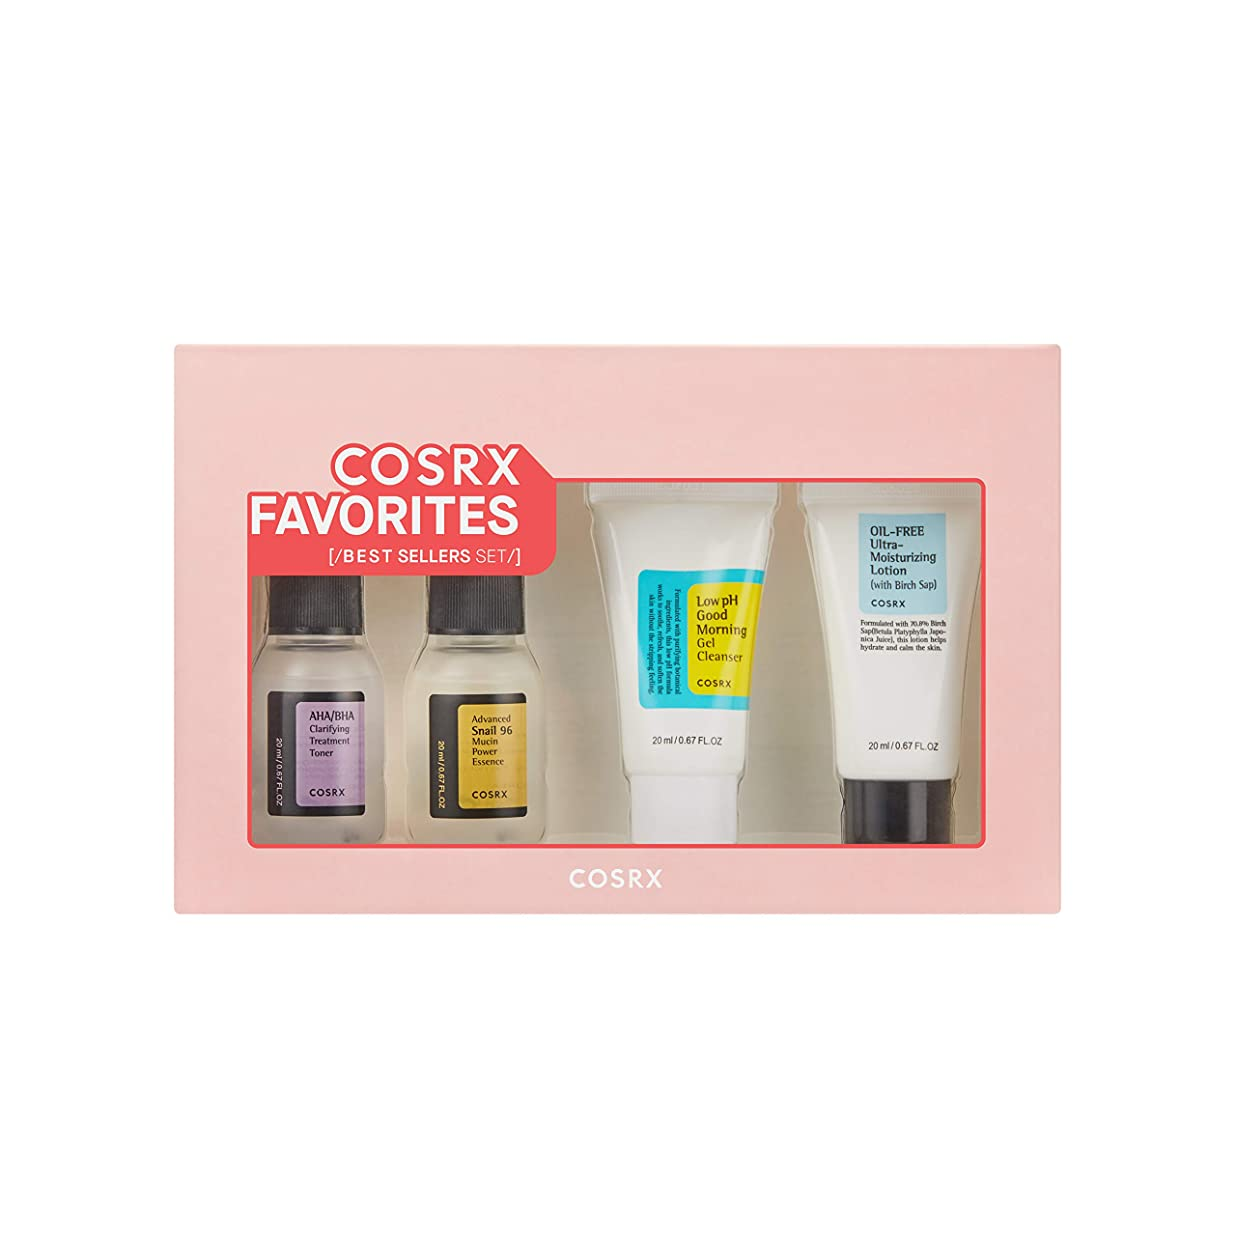 動機魔術師専門用語COSRX Favorites Best Sellers Set - Mini Sized Low pH Good Morning Gel Cleanser, AHA/BHA Clarifying Treatment Toner, Advanced Snail 96 Mucin Power Essence, Oil-Free Ultra Moisturizing Lotion (並行輸入品)